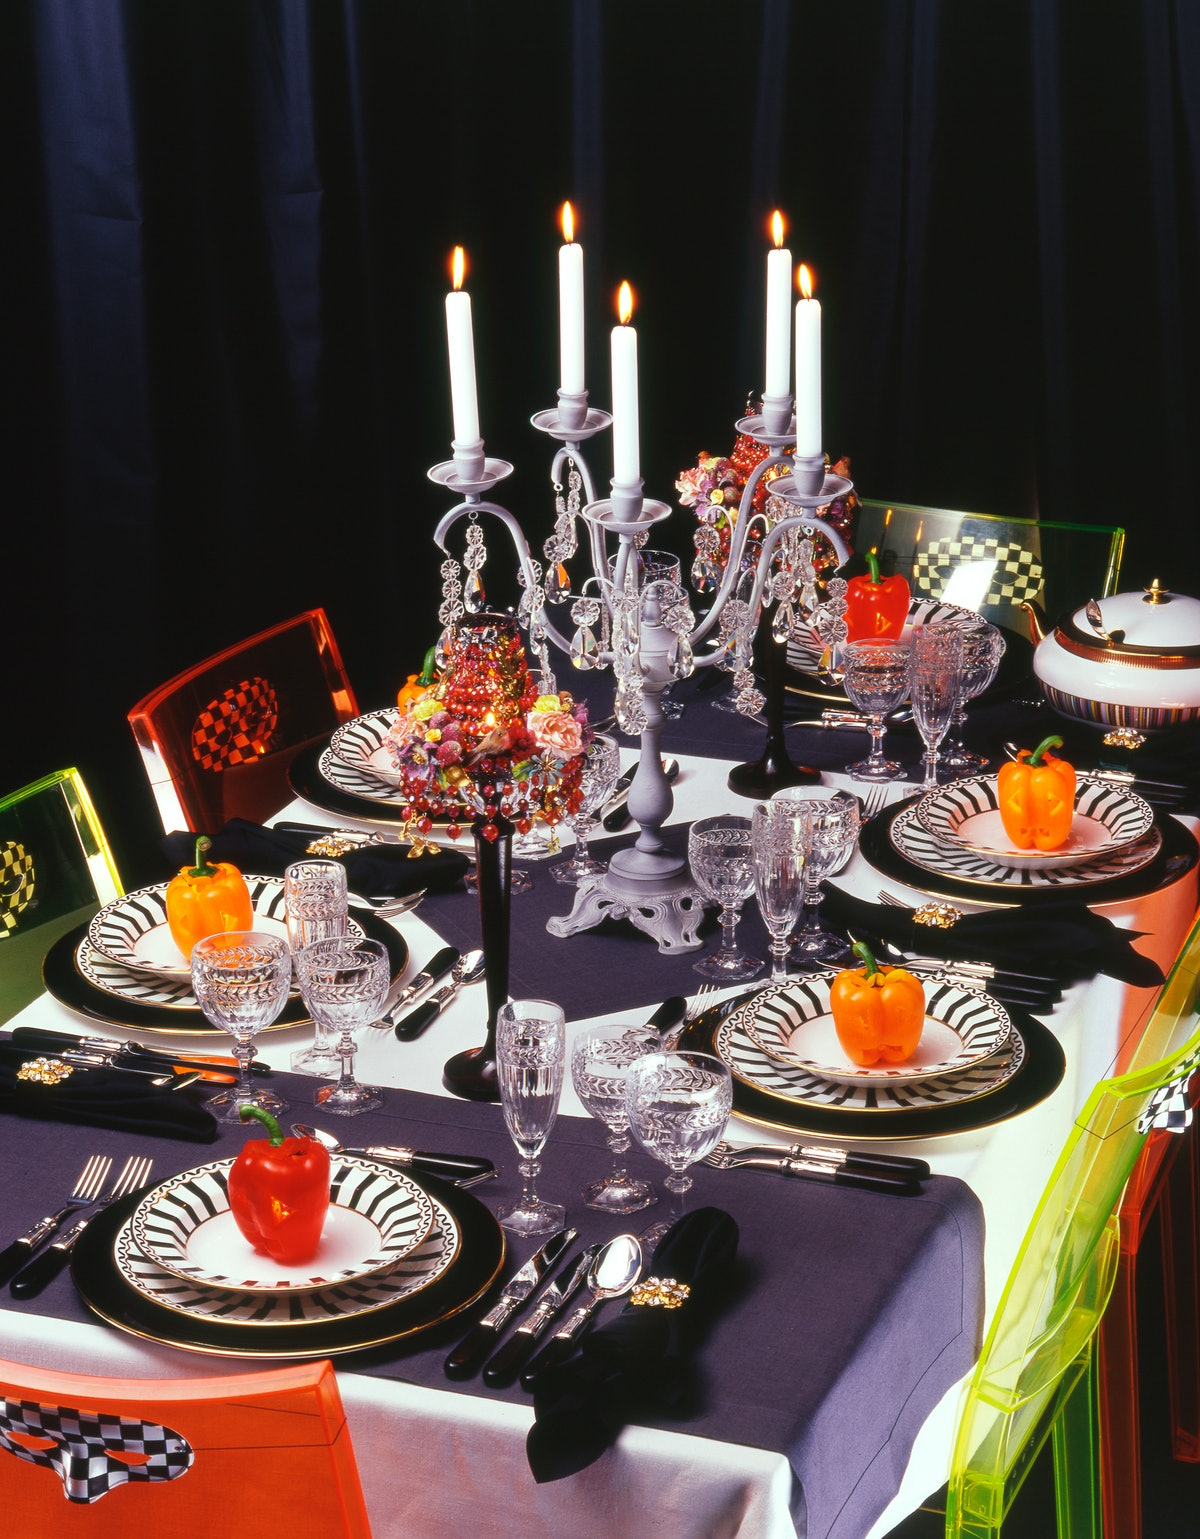 A Halloween dinner table is set with black napkins, black and white plates, candles, and face masks ...